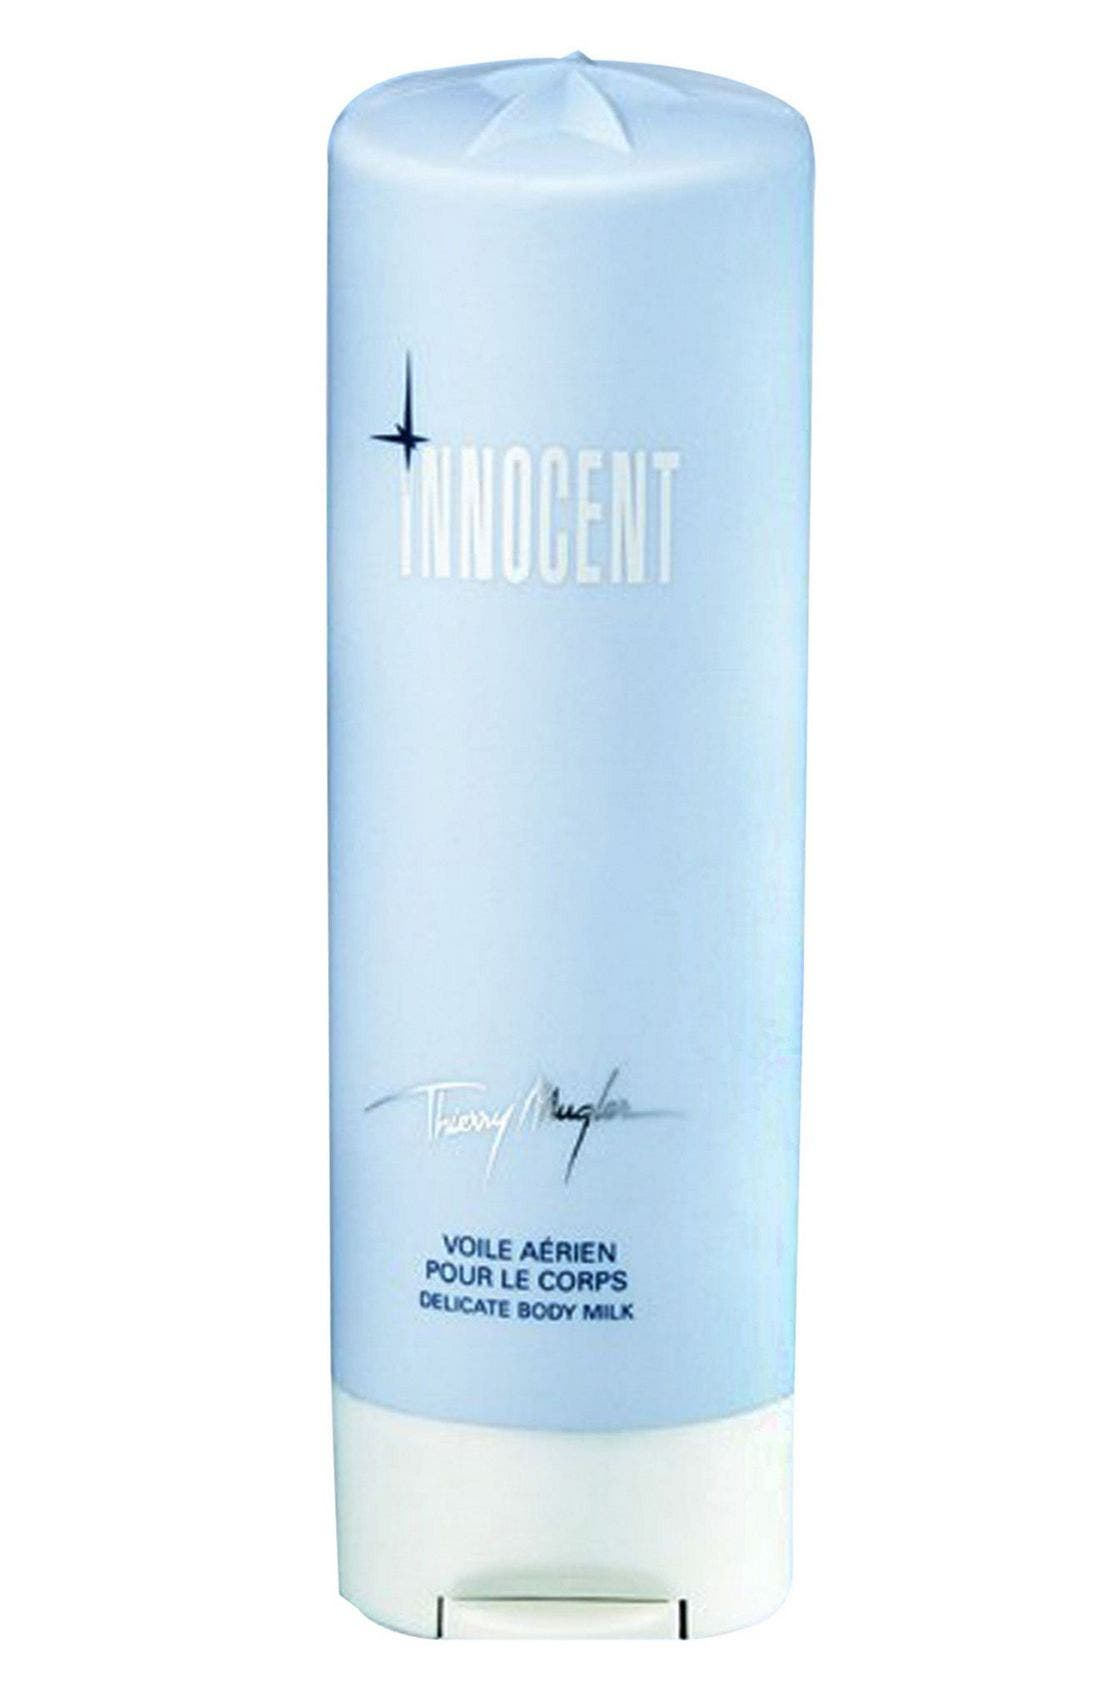 Alternate Image 1 Selected - Innocent by Thierry Mugler Delicate Body Milk